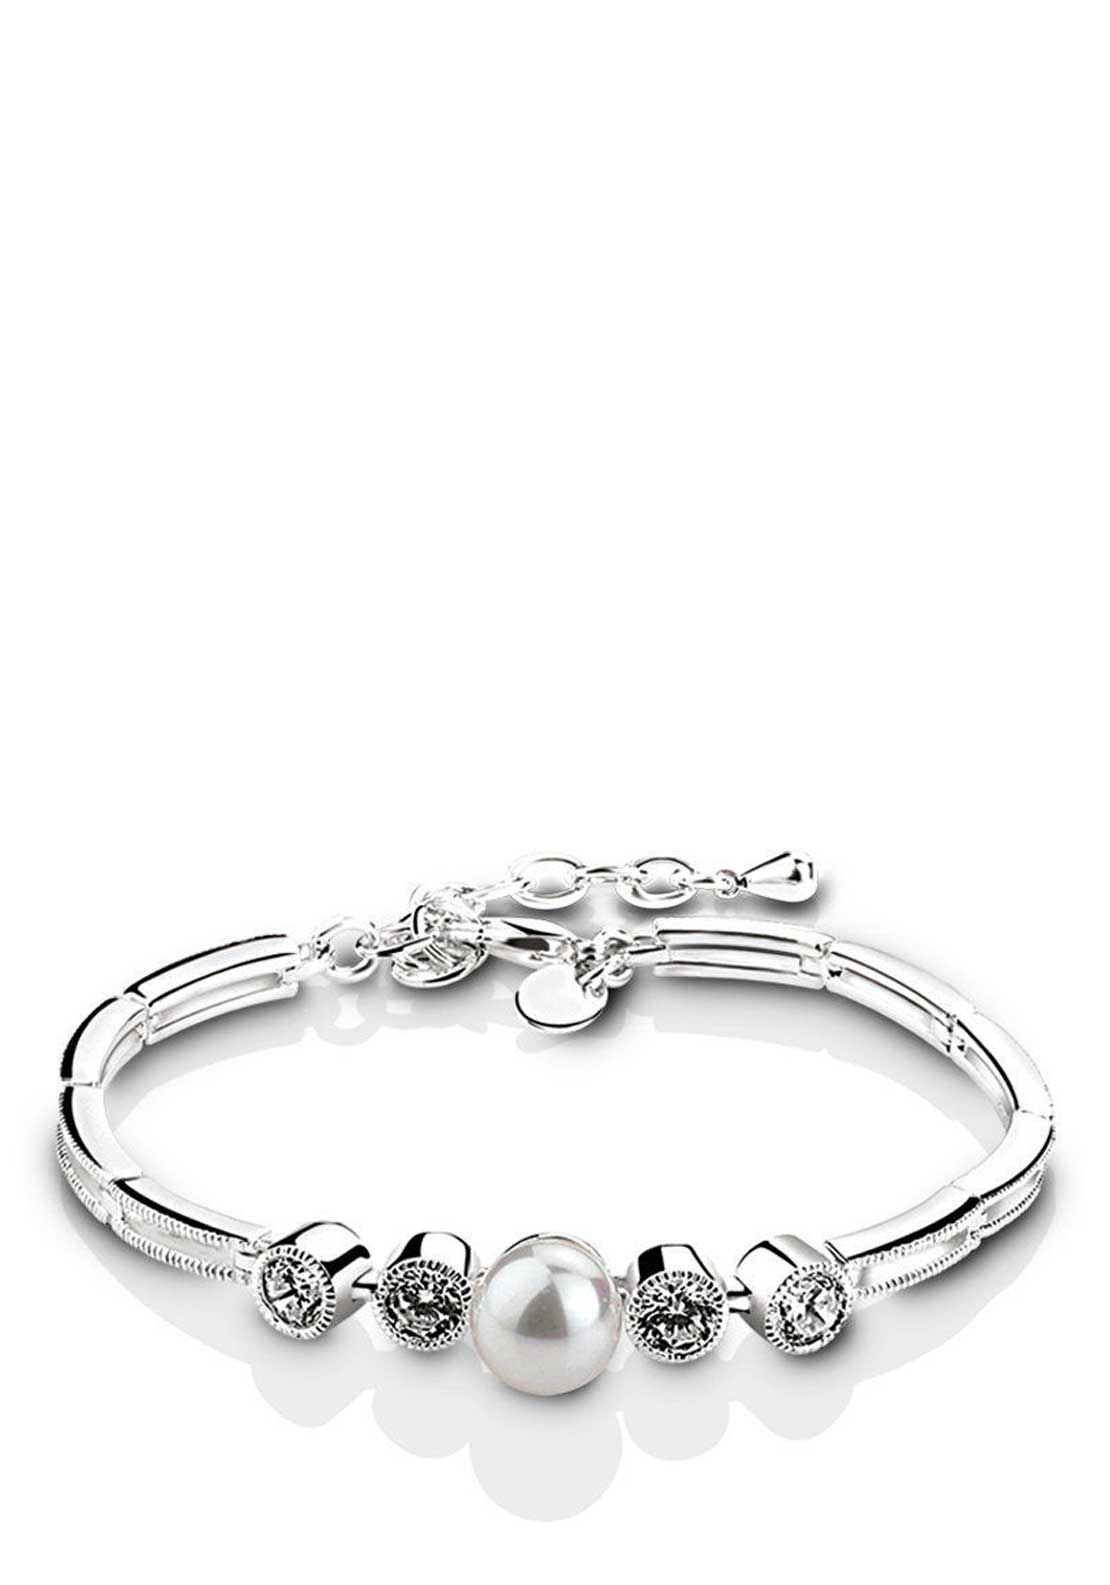 Newbridge Princess Grace Collection Bracelet, Silver